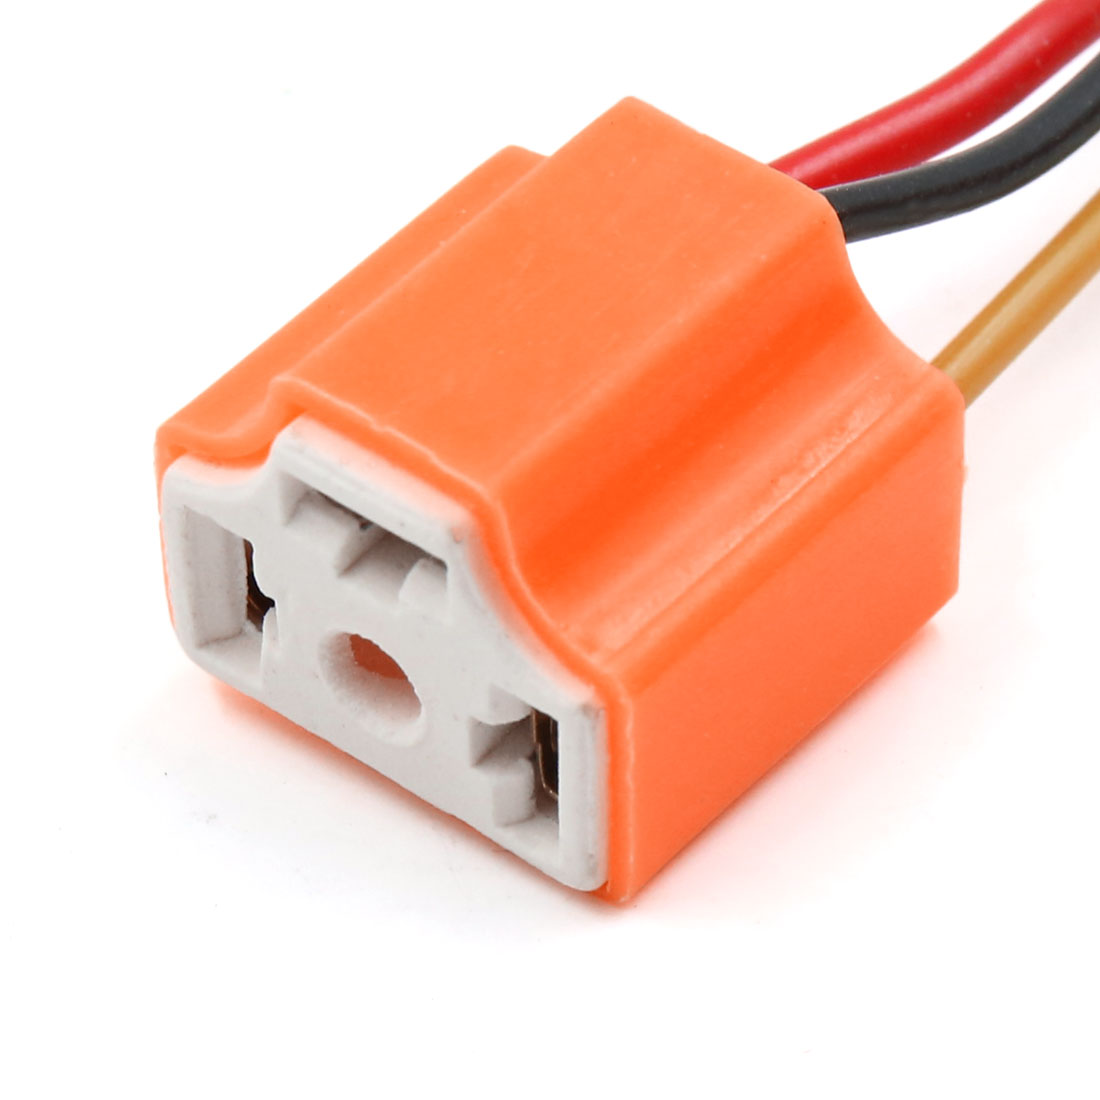 hight resolution of 15pcs orange ceramic h4 light extension wiring harness socket connector for car